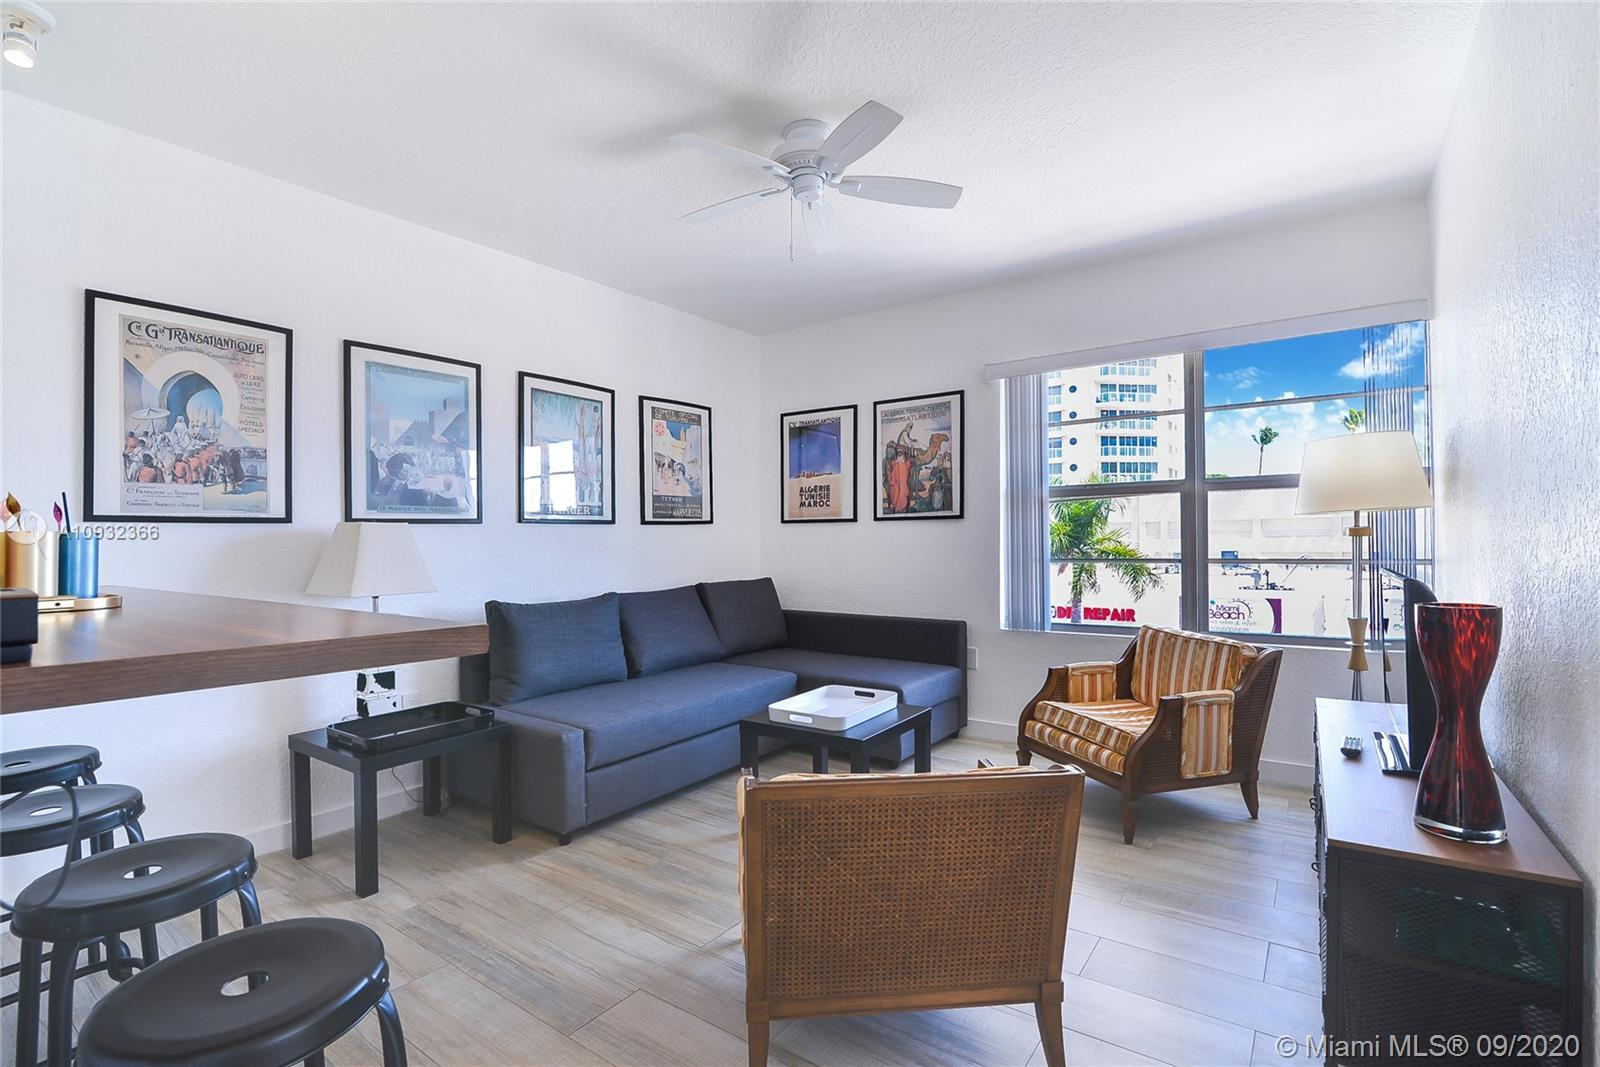 A block from the beach, with side Ocean View. Beautiful corner 2 bedrooms/1bath unit. This remodeled